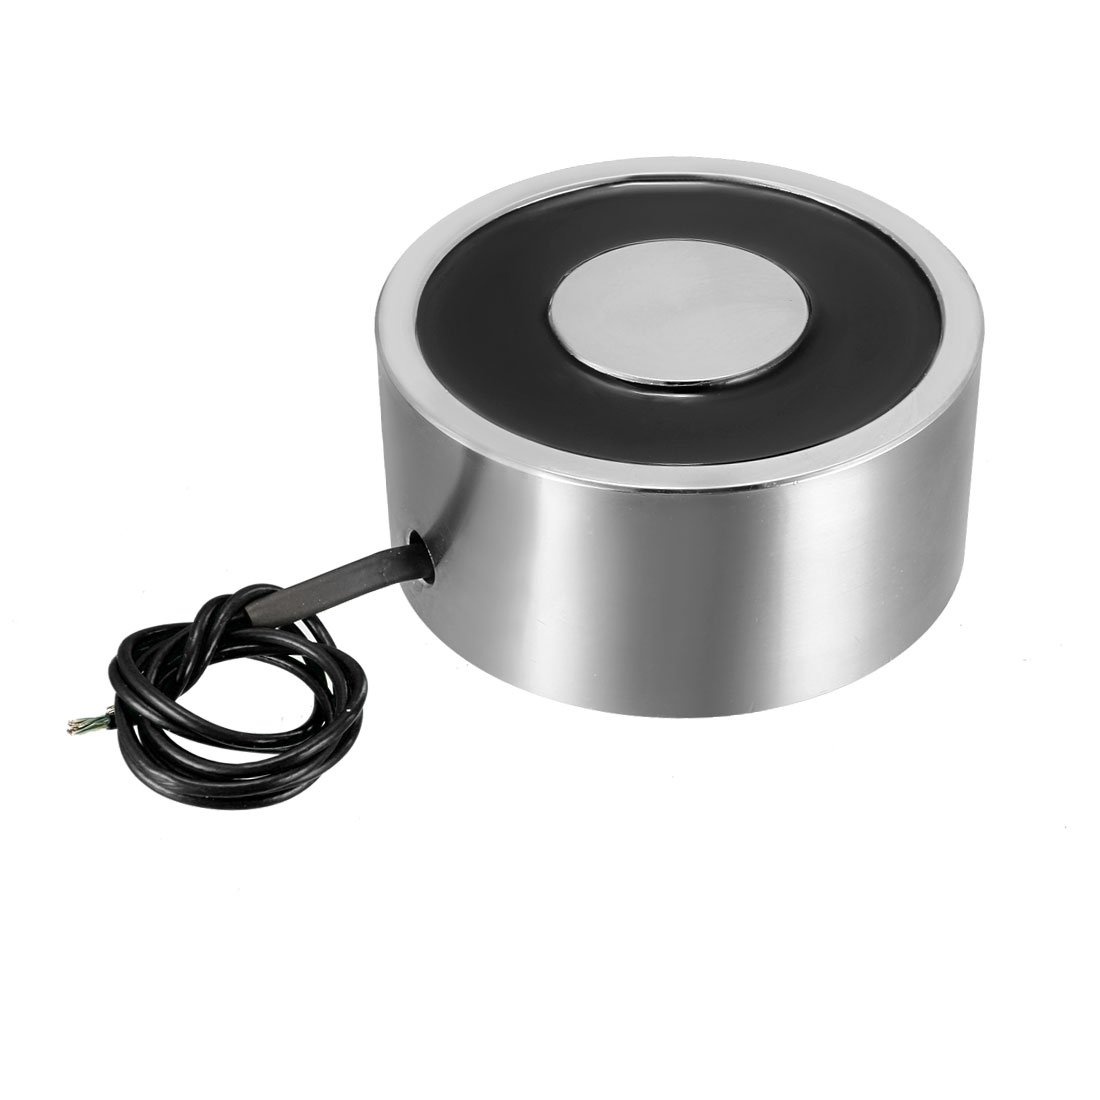 uxcell DC12V 100KG Lift Holding Electromagnet Sucking Disc Electric Lifting Magnet Solenoid 80mm x 38mm